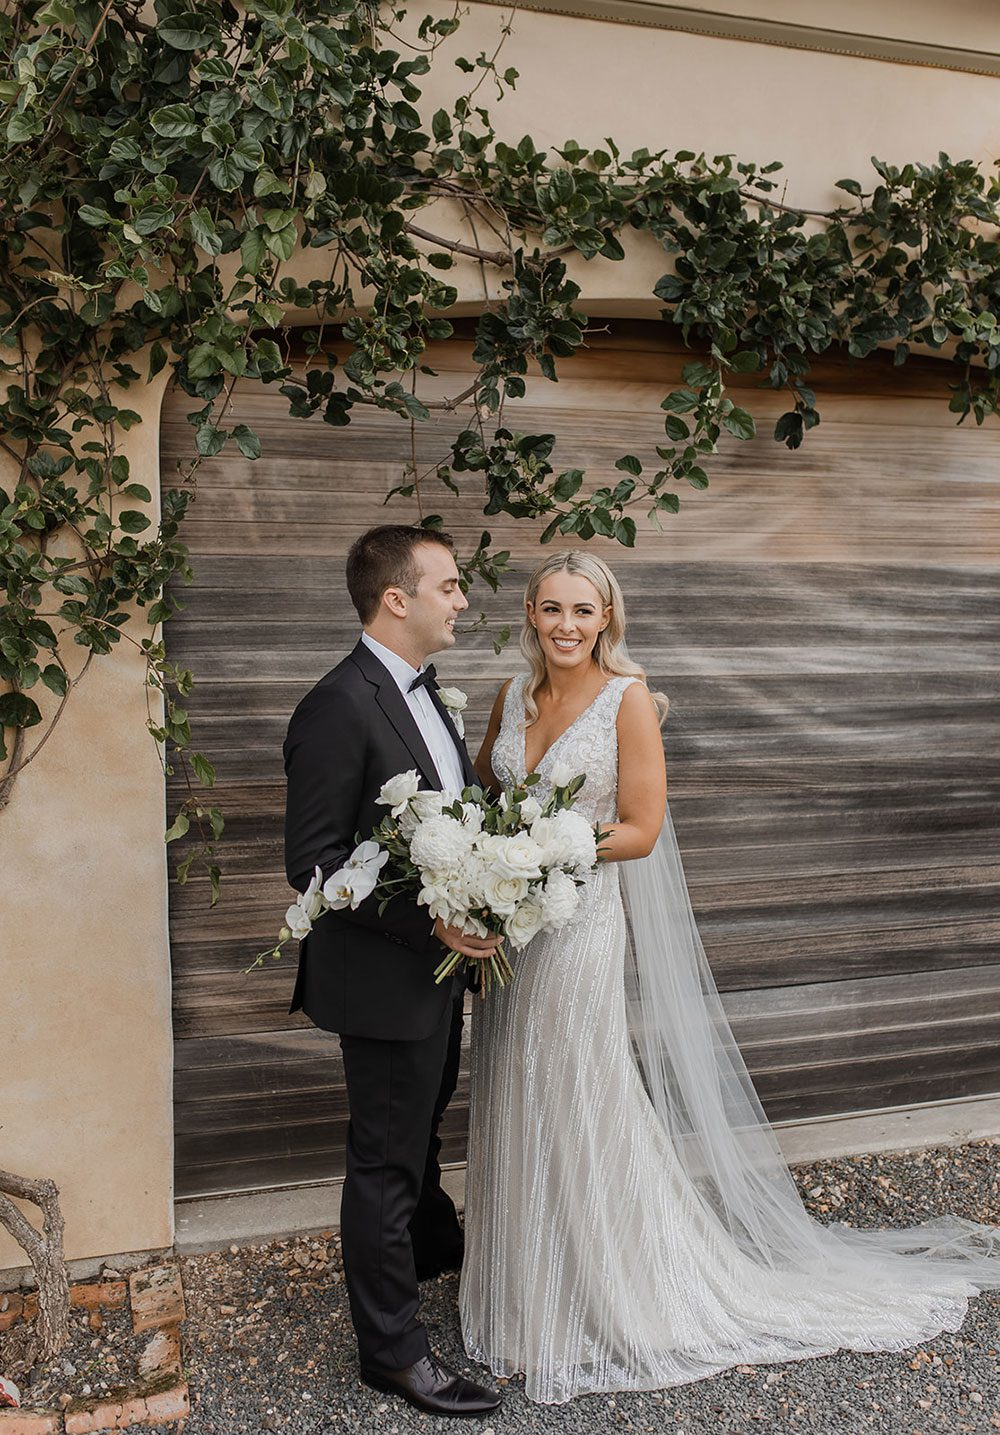 Bride wearing bespoke fitted V-neck gown in beaded lace with front split and sheer beaded overlay by Vinka bridal boutique NZ- with groom